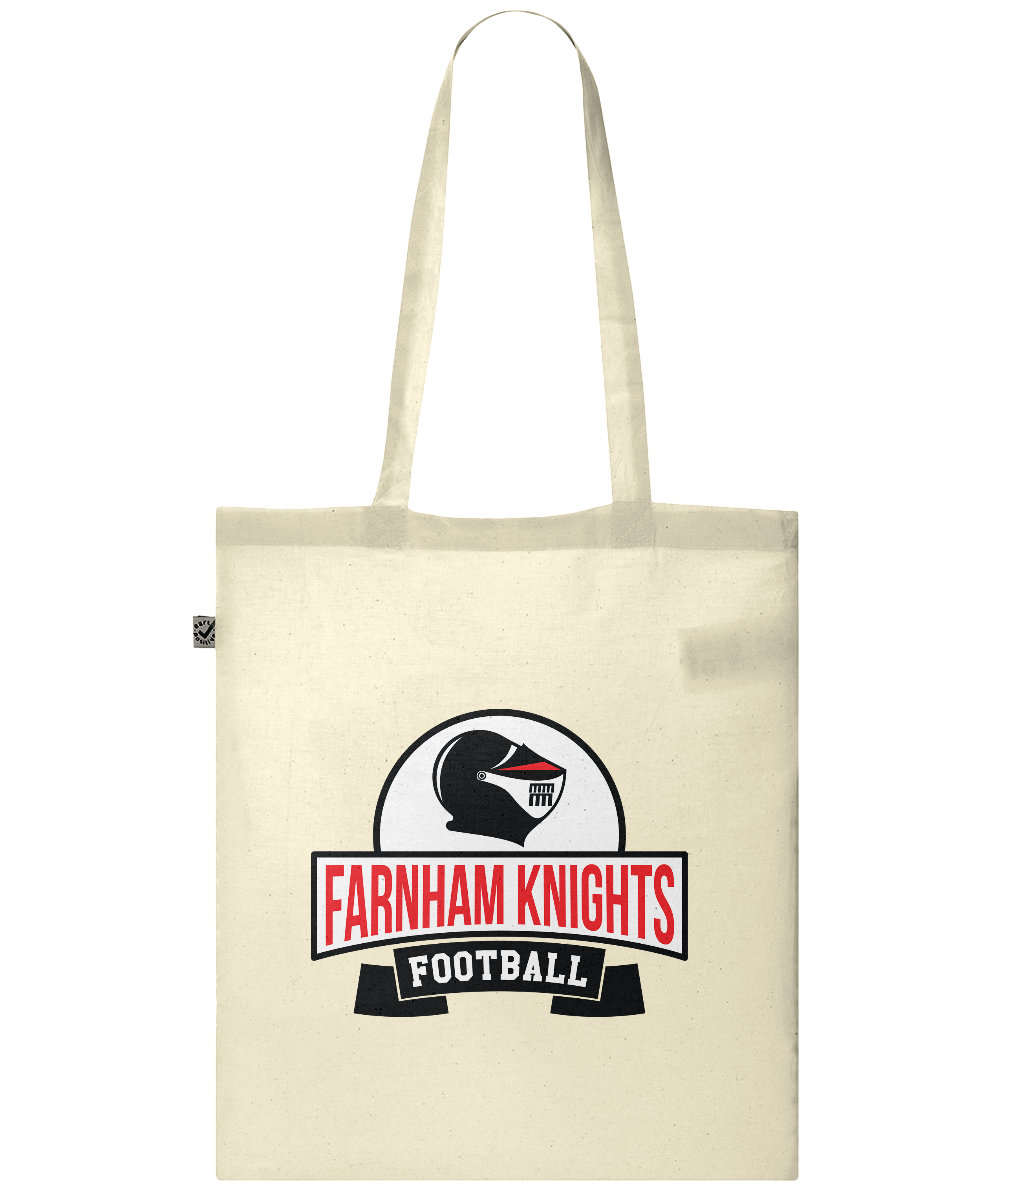 2018 Farnham Knights Arch Classic Shopper Tote Bag